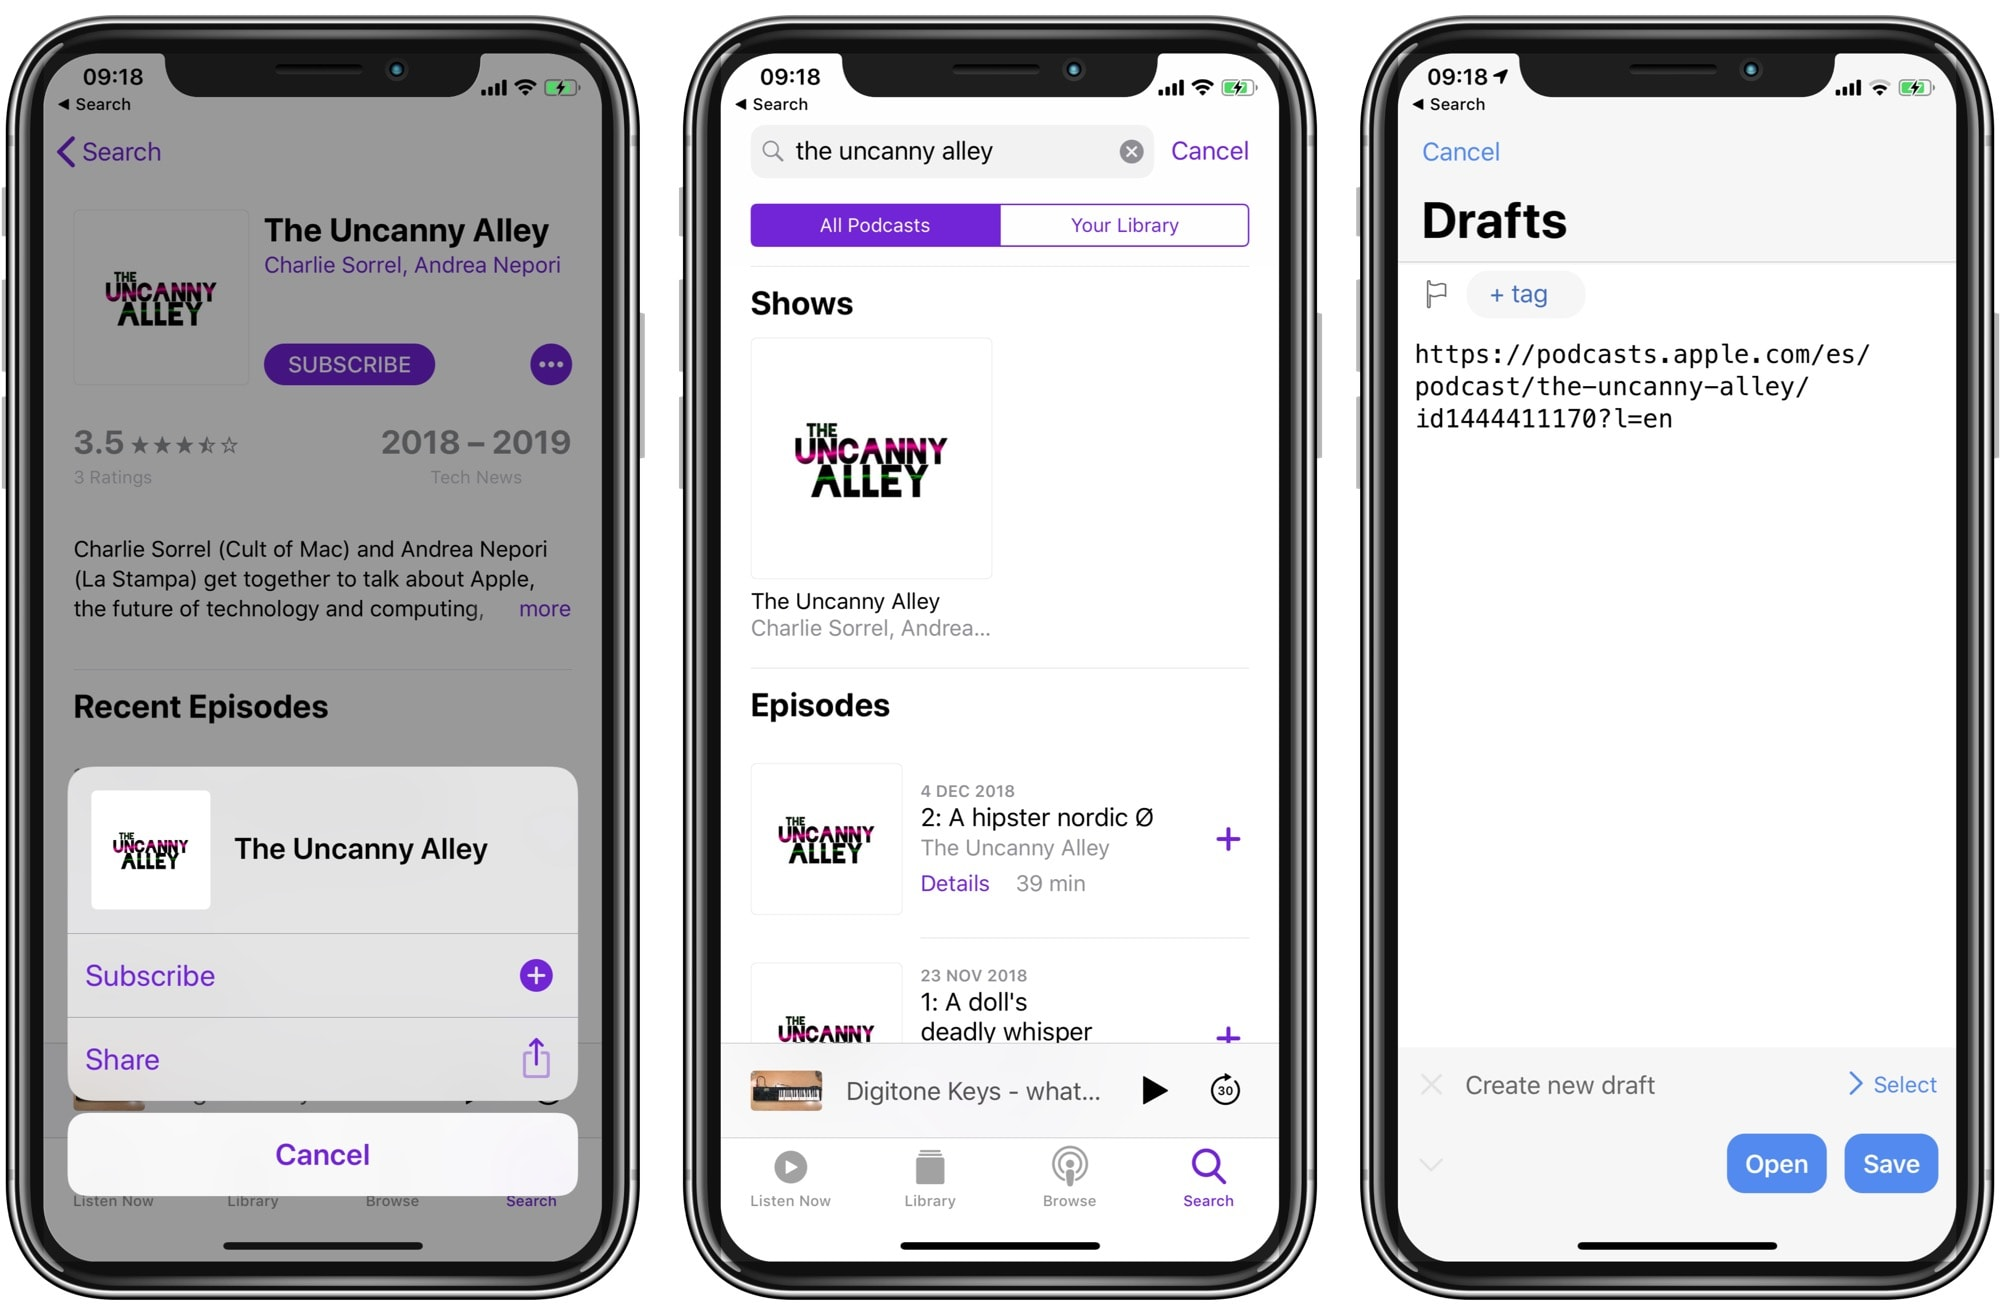 You can grab a podcast feed right from Apple's directory, using the Podcasts app.